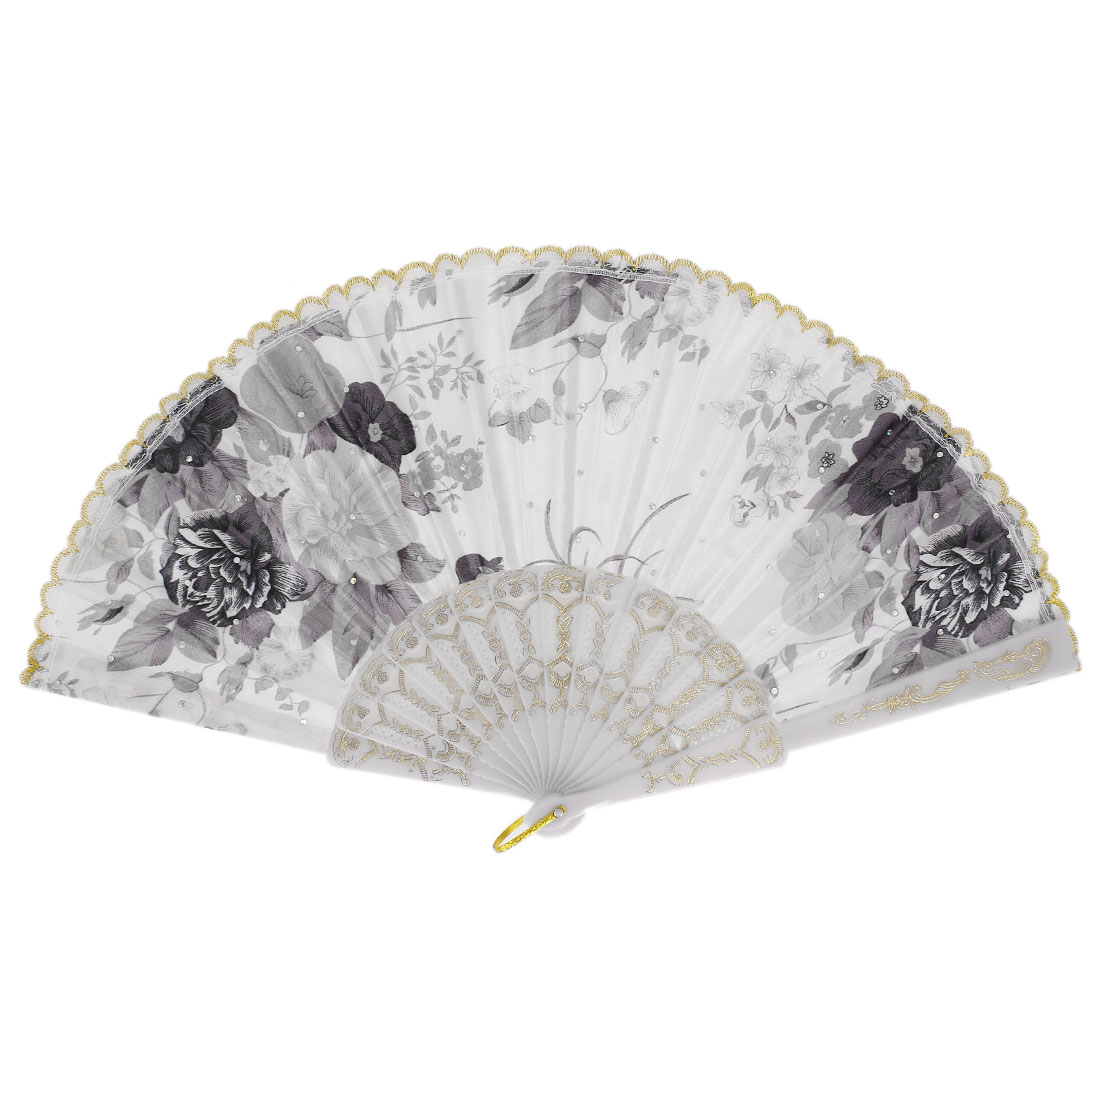 Ladies Women Lace Silk Flower Print Glittery Squins Decoration Folding Hand Held Fan Tri Color